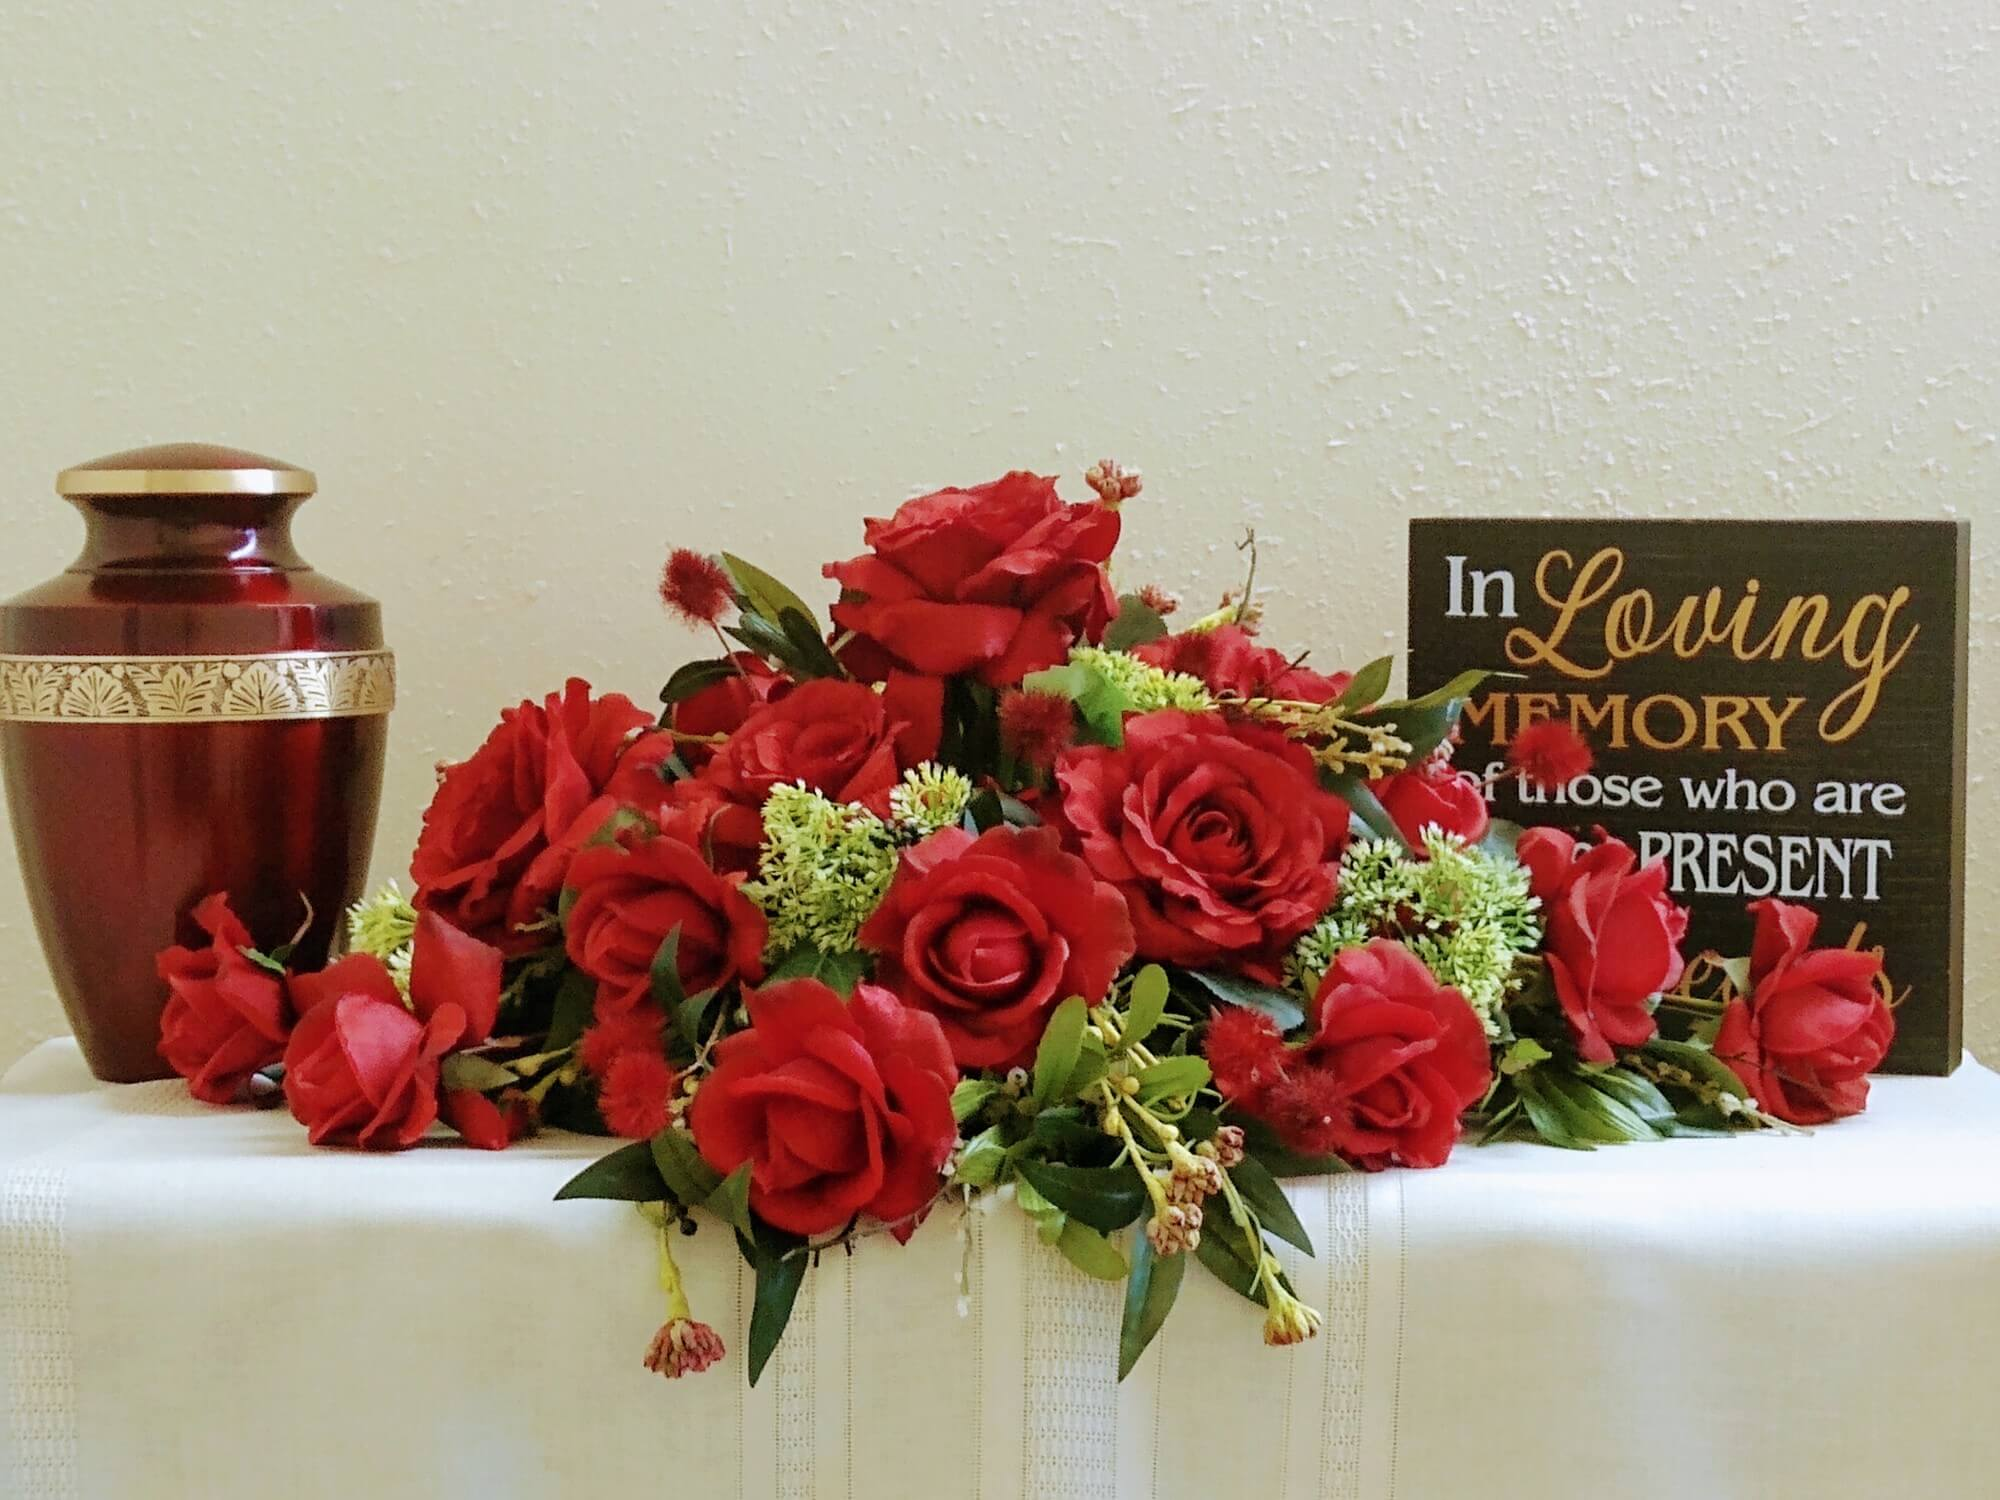 Display of Urn and flowers at Vilonia Funeral Home